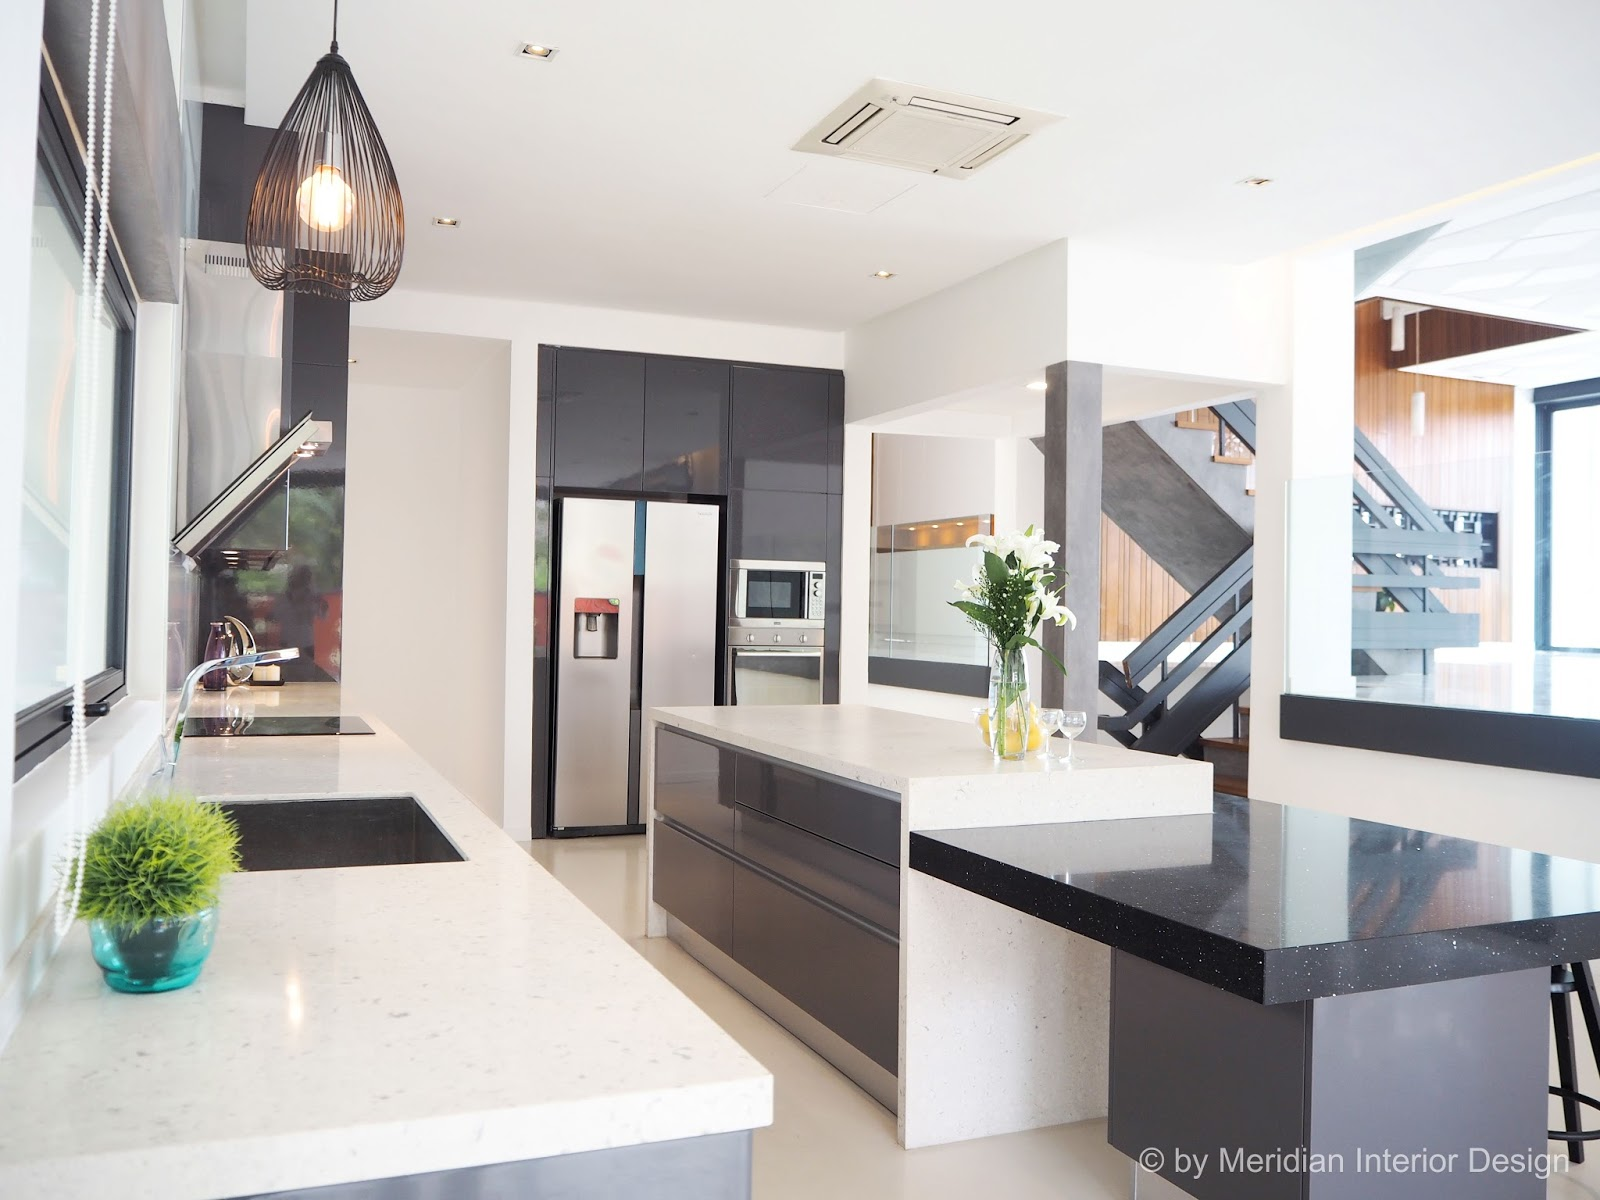 Kitchen Cabinets Price In Malaysia Meridian Interior Design And Kitchen Design In Kuala